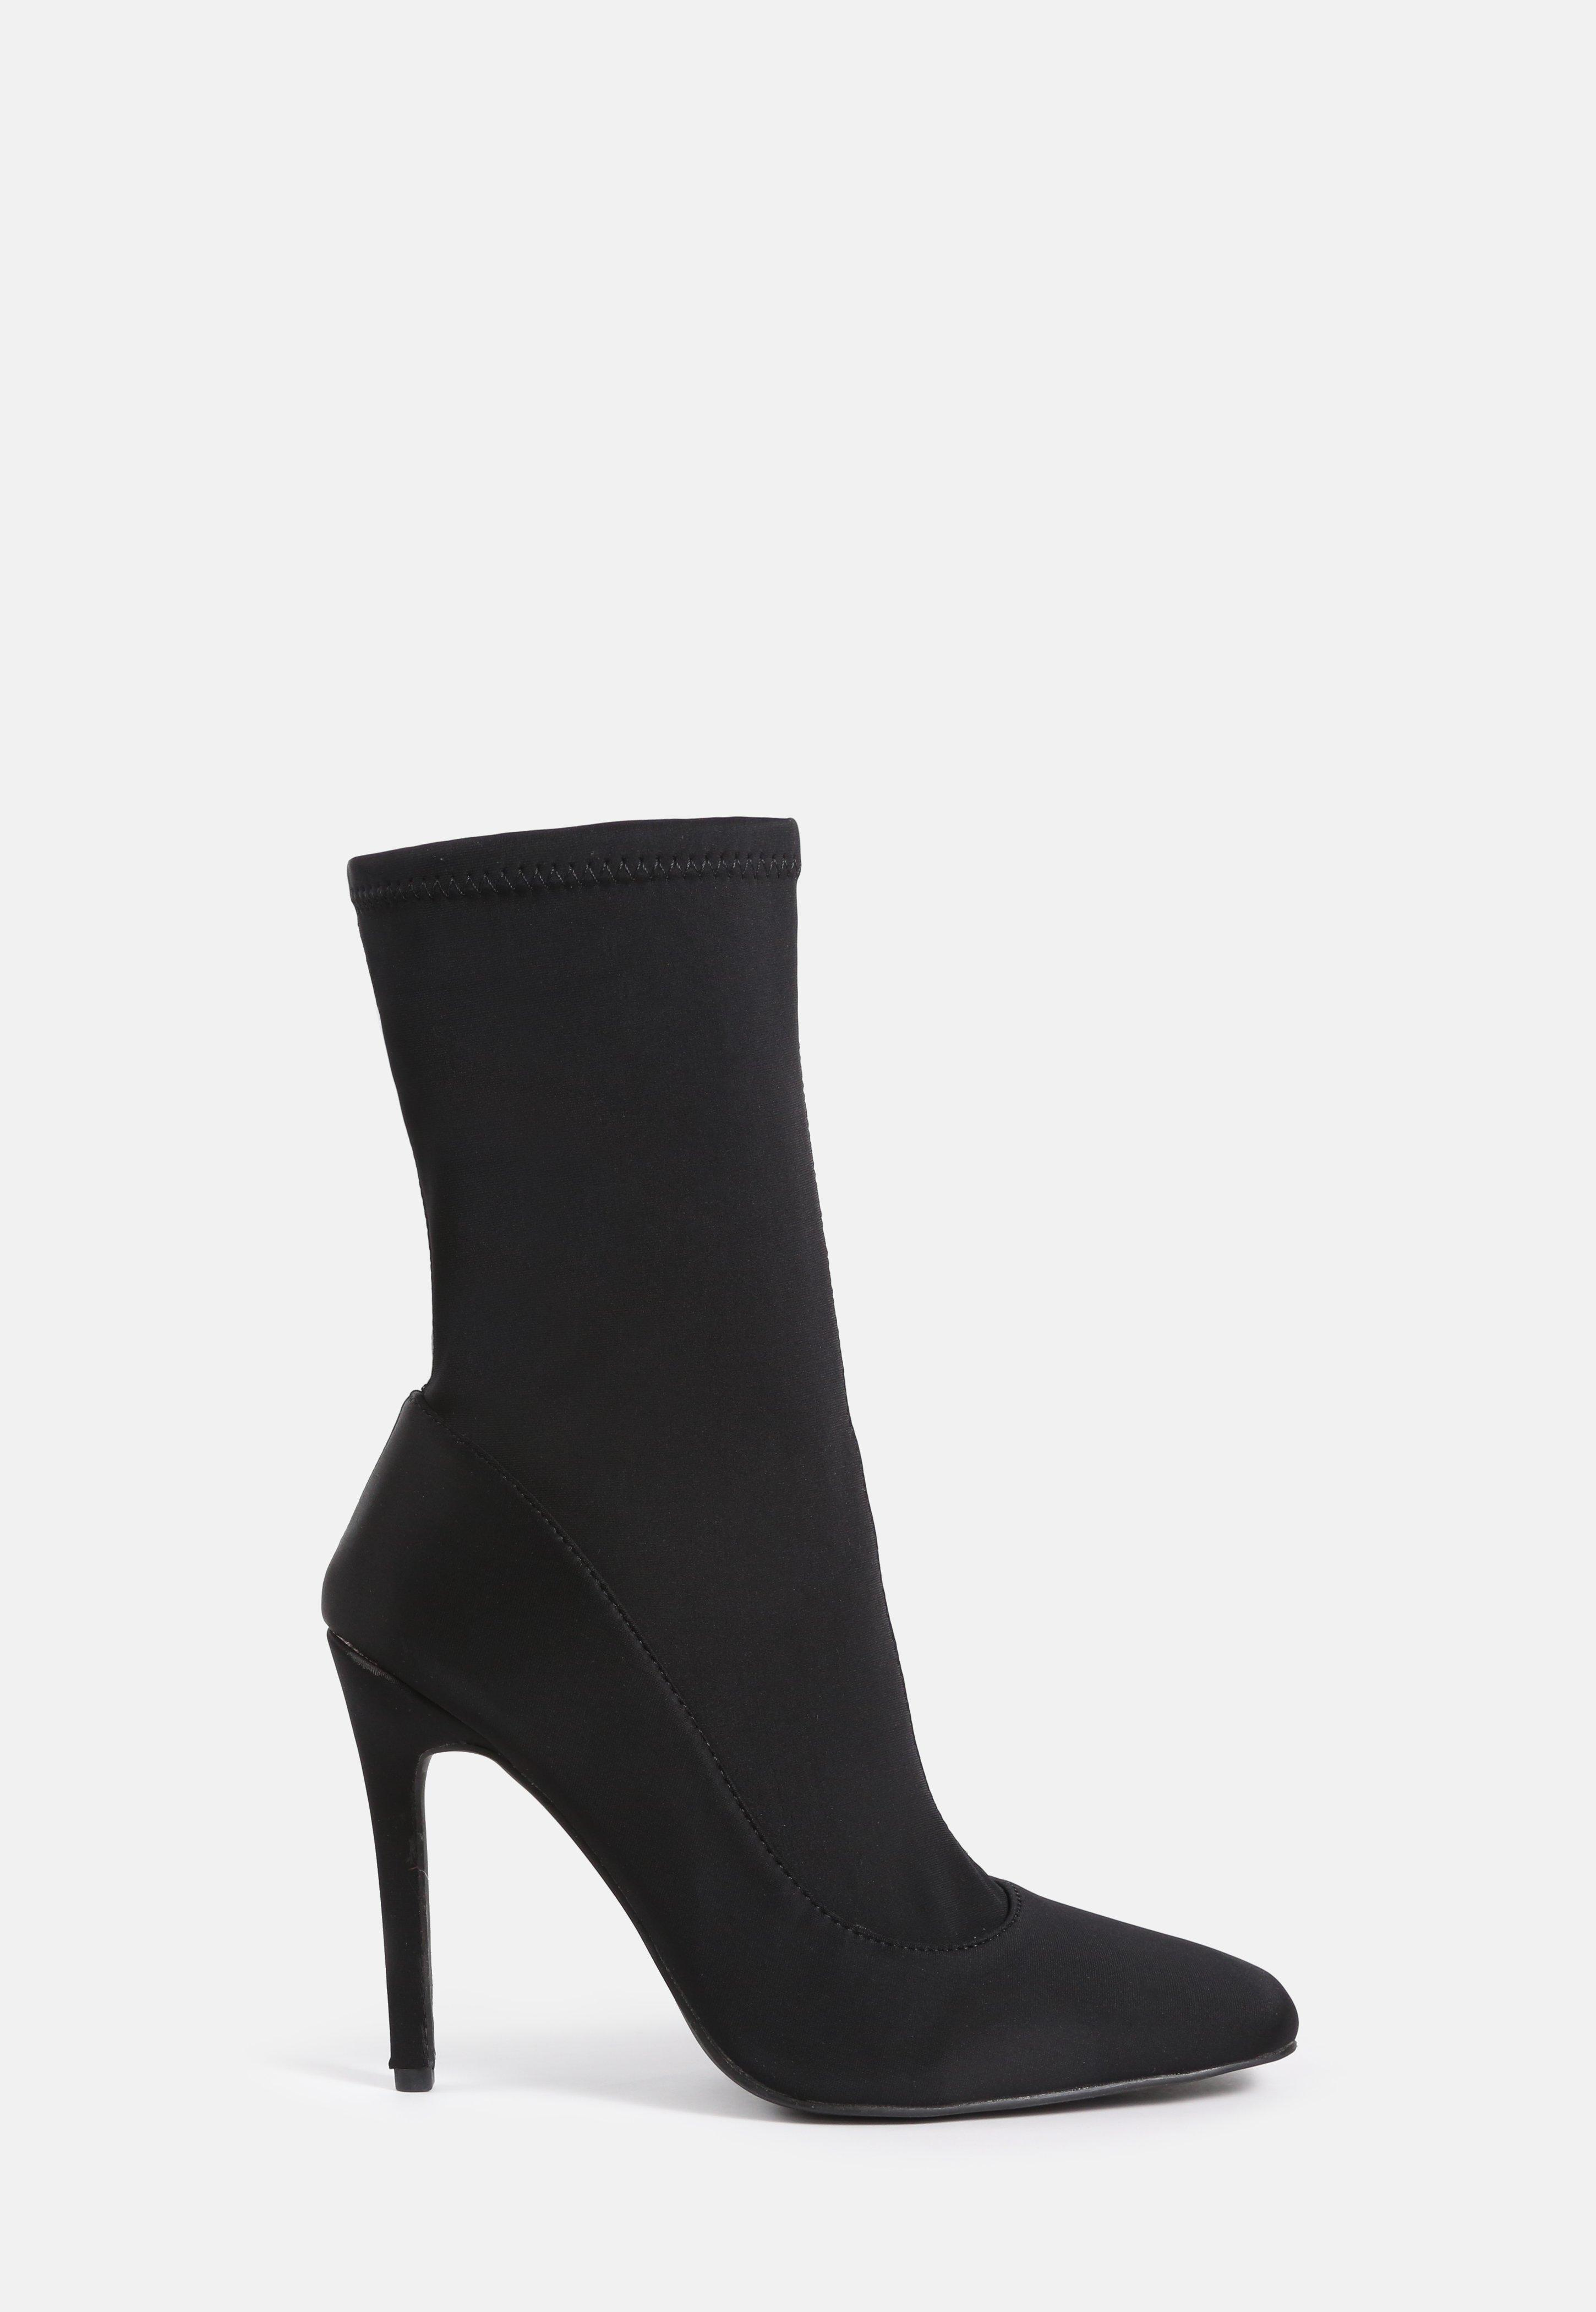 776e198ee8b3 Women's Boots | Ankle Boots | Black Boots | Missguided